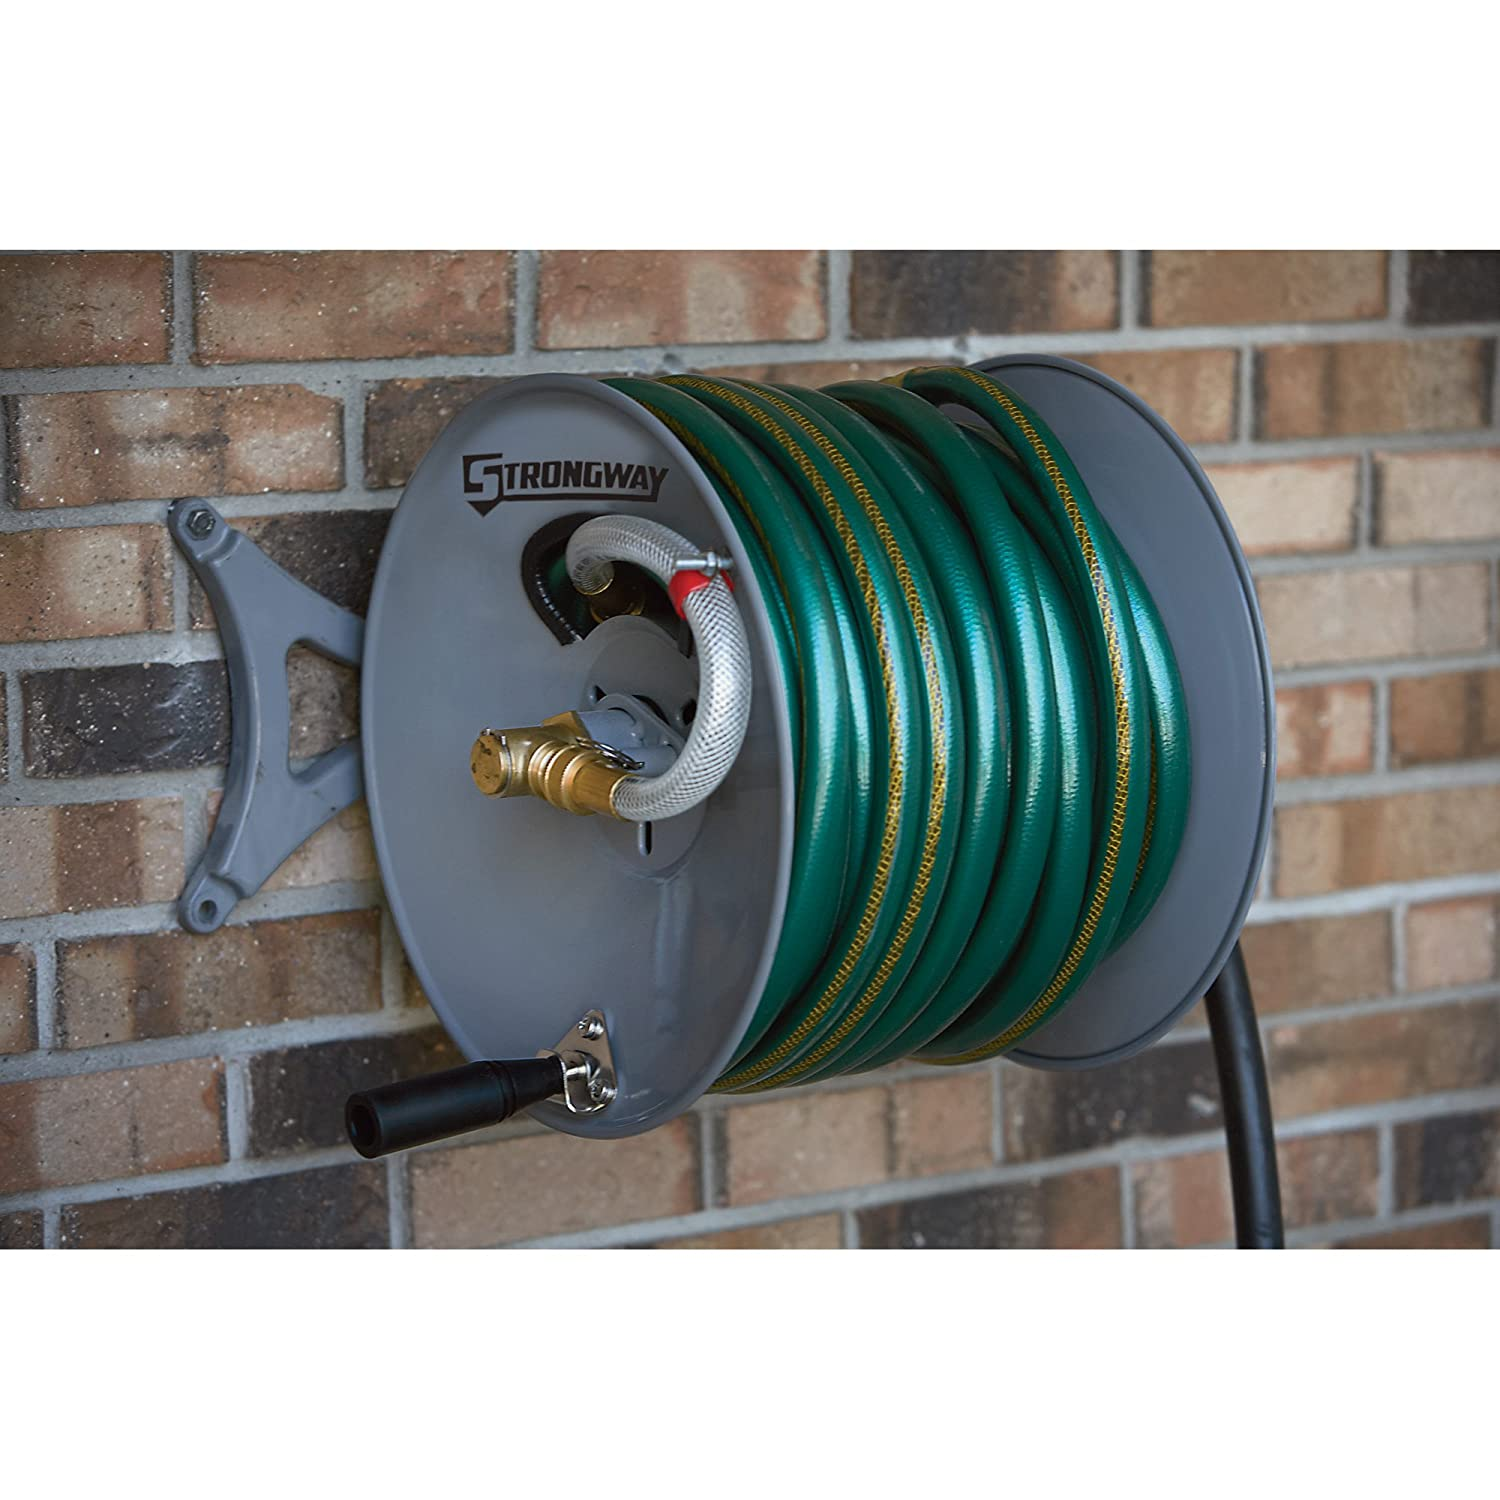 Strongway Parallel Or Perpendicular Wall Mount Garden Hose Reel   Holds  150ft. X 5/8in. Hose: Amazon.ca: Patio, Lawn U0026 Garden